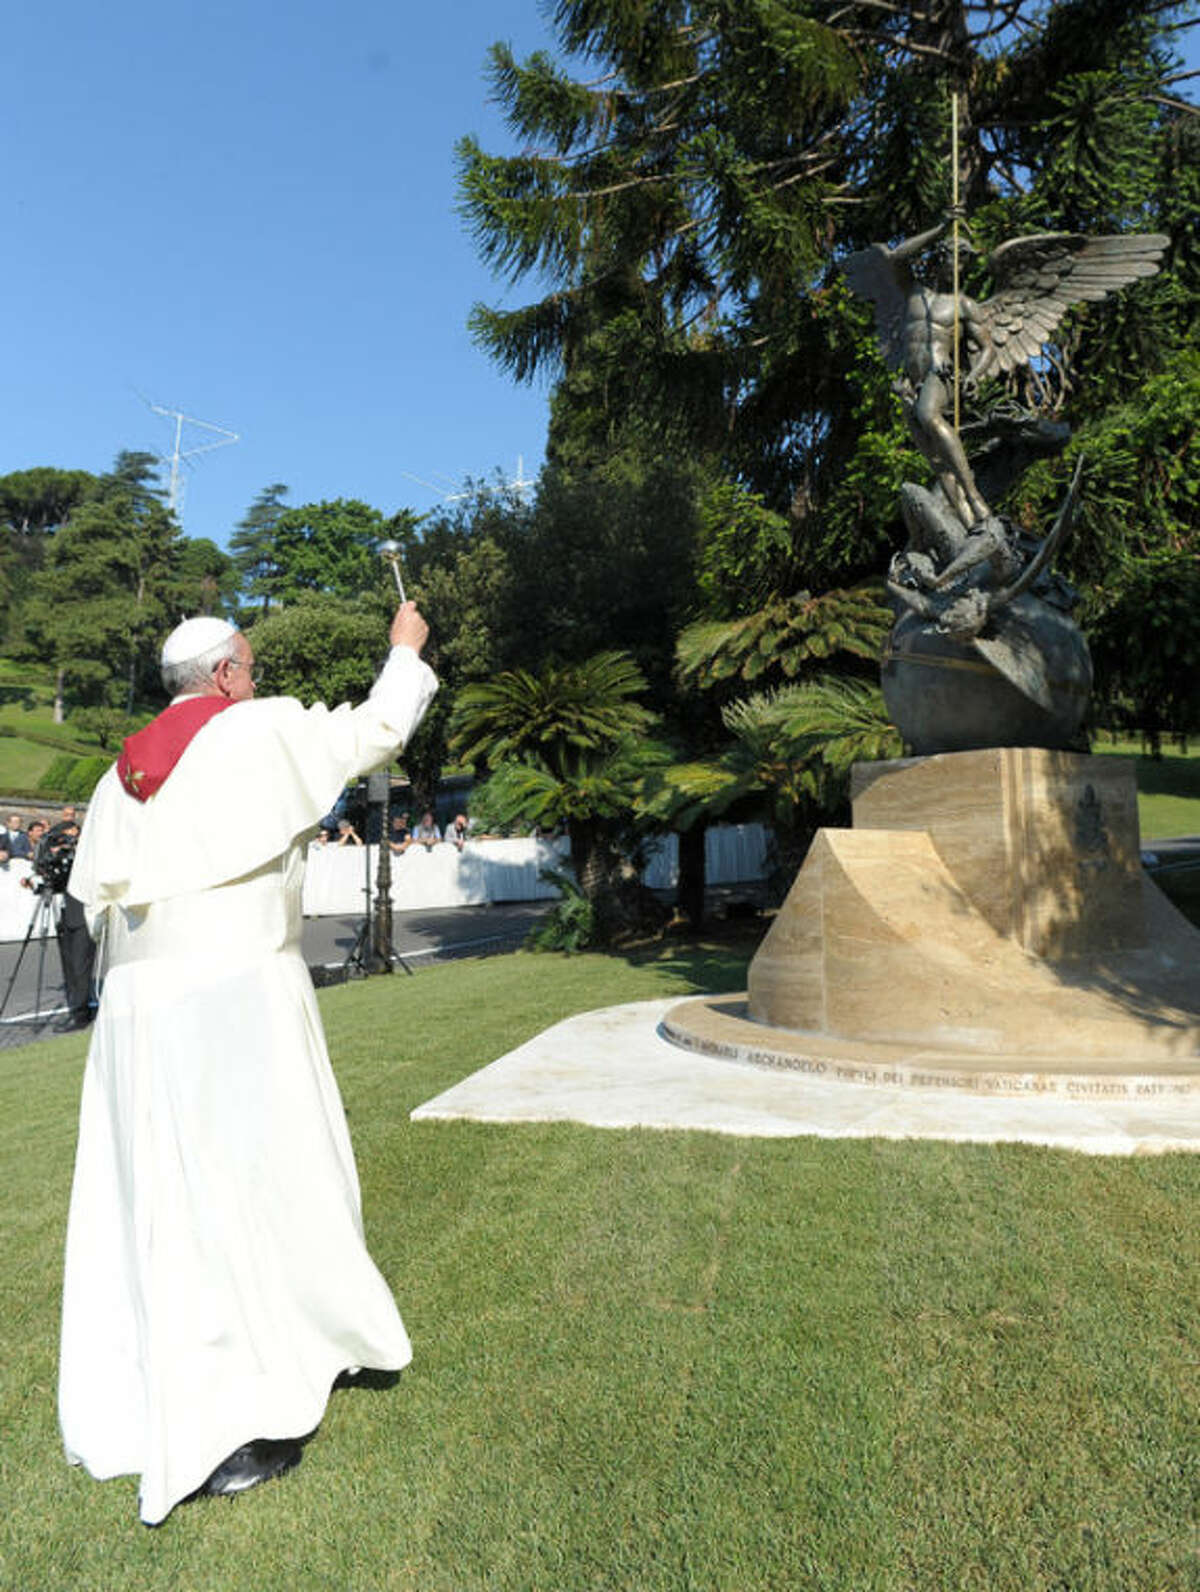 """In this photo provided by the Vatican newspaper L'Osservatore Romano Pope Francis blesses the San Michele Arcangelo statue during a ceremony for its unveiling at the Vatican, Friday, July 5, 2013. Francis and Pope emeritus Benedict XVI were together Friday morning for the inauguration of the new monument inside the Vatican gardens - the first time they have been seen together since May 2, when Francis welcomed Benedict back to the Vatican after his initial retirement getaway. Pope Francis issued his first encyclical Friday, a meditation on faith that is unique because it was written with Benedict XVI. Benedict's hand is evident throughout much of the first three chapters of """"The Light of Faith,"""" with his theological style, concerns and reference points clear. (AP Photo/L'Osservatore Romano, ho)"""